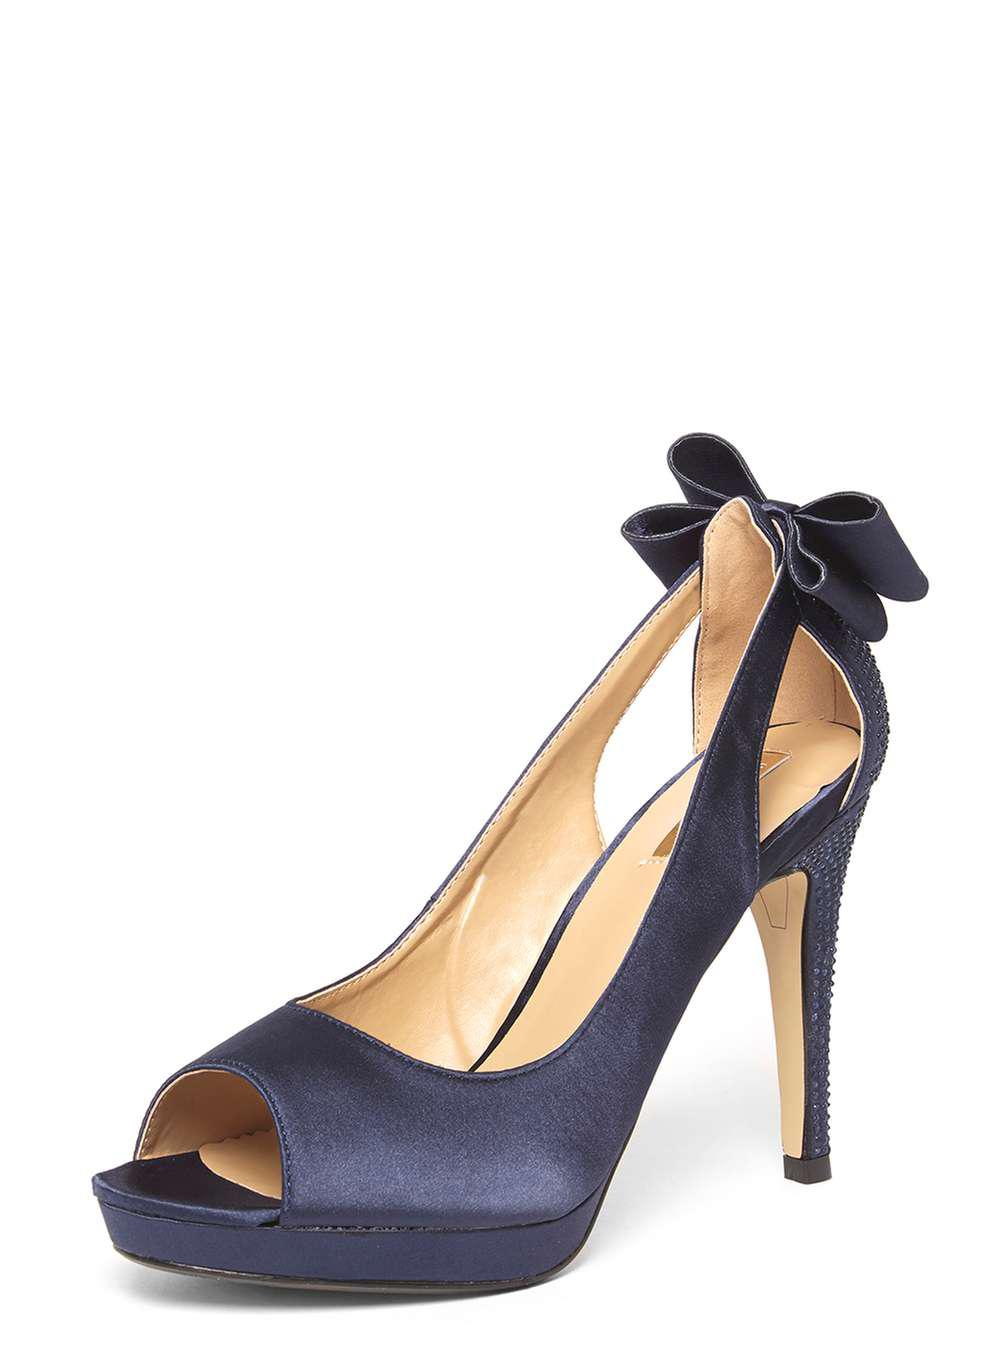 Dorothy Perkins Navy Microfibre 'Dallas' Court Shoes